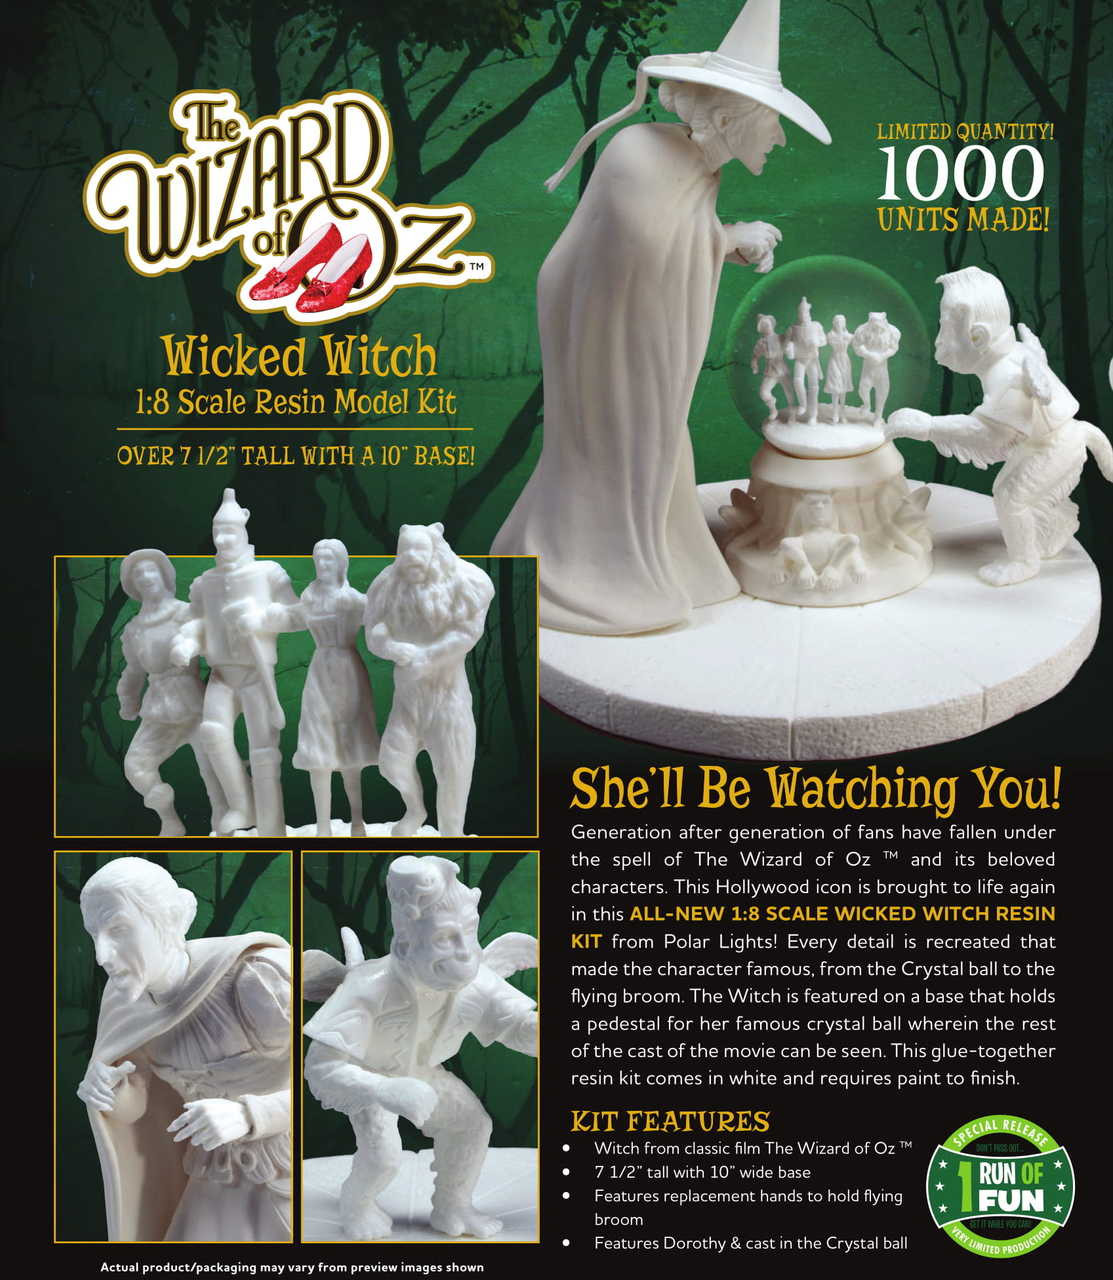 Wicked Witch of the West Resin Figure Kit